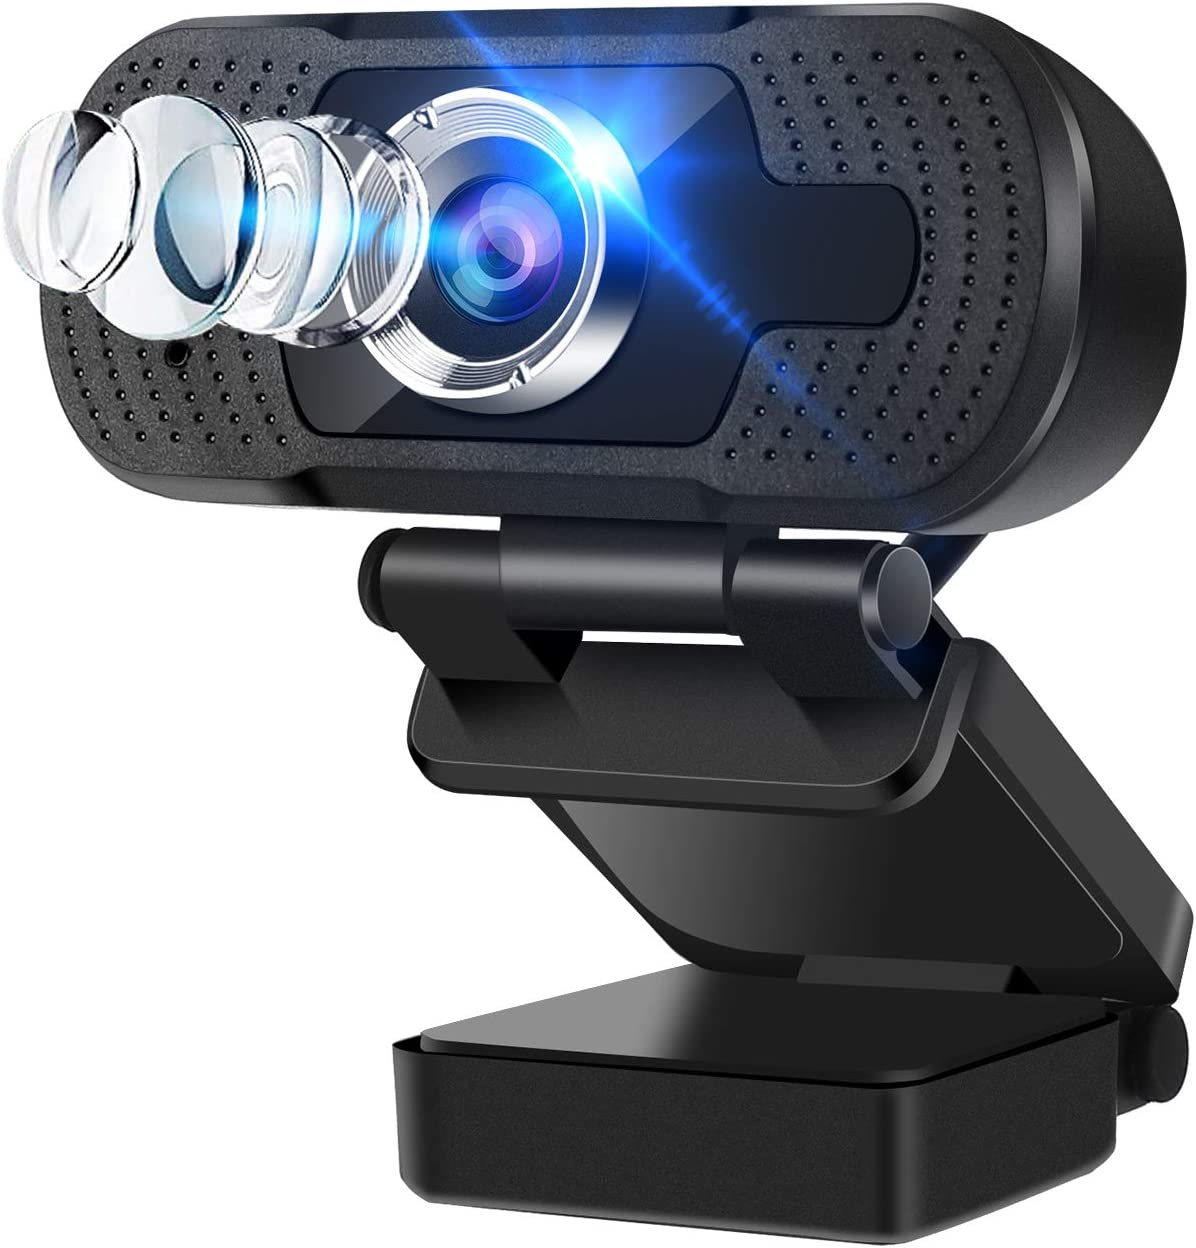 toberto Webcam with Microphone USB Webcams HD 1080P Computer Web Camera Desktop Laptop Webcams with Auto Light Correction Plug and Play for Online Classes YouTube Facebook